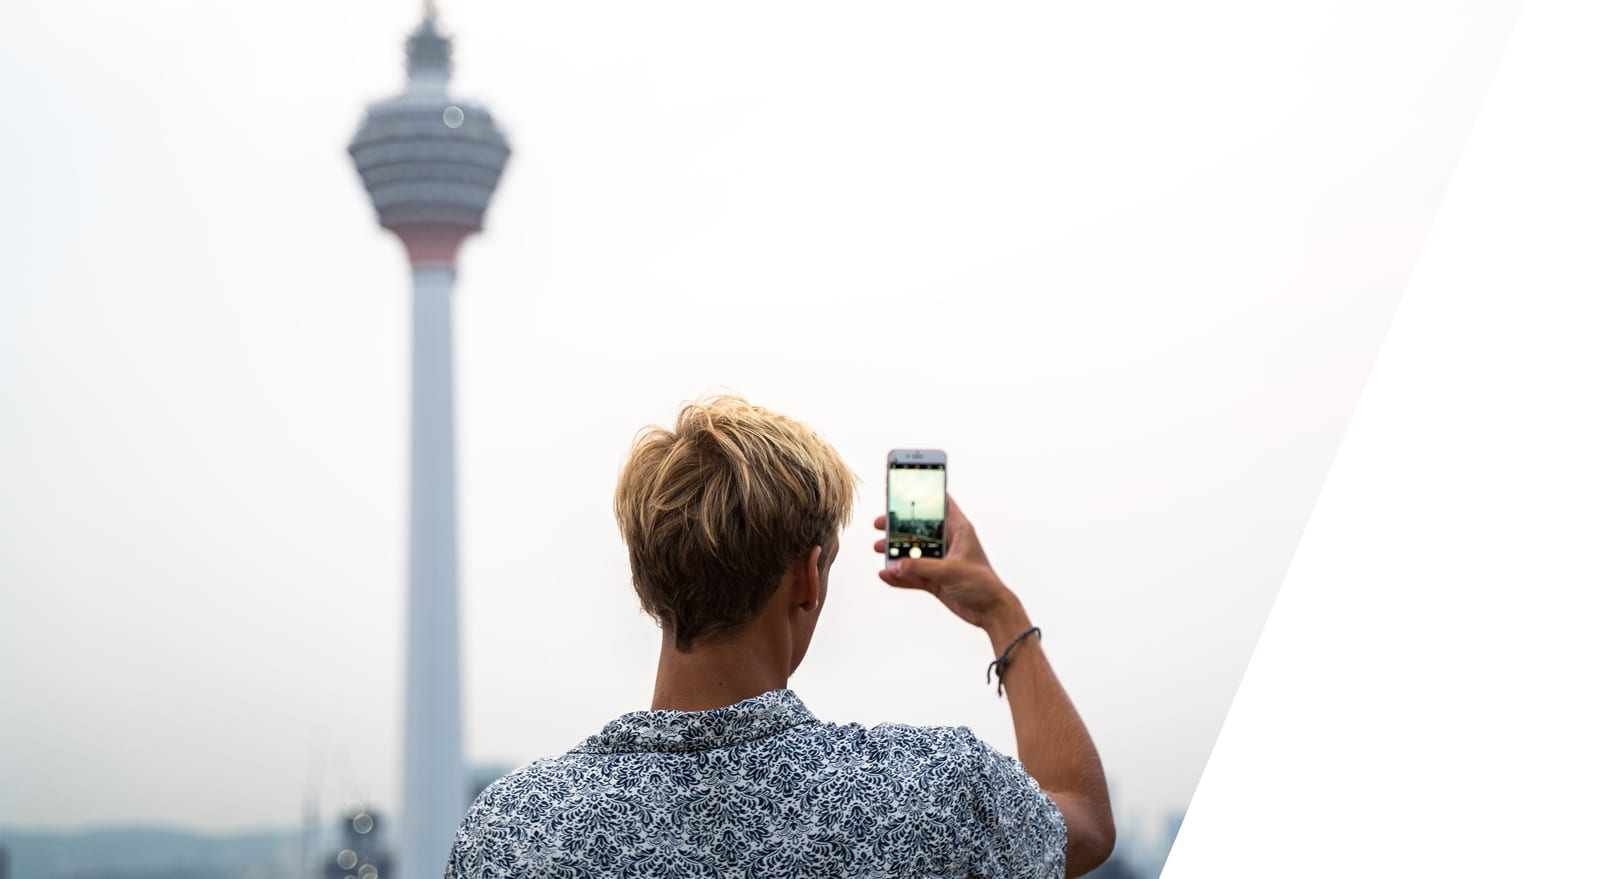 student taking photo of the KL tower